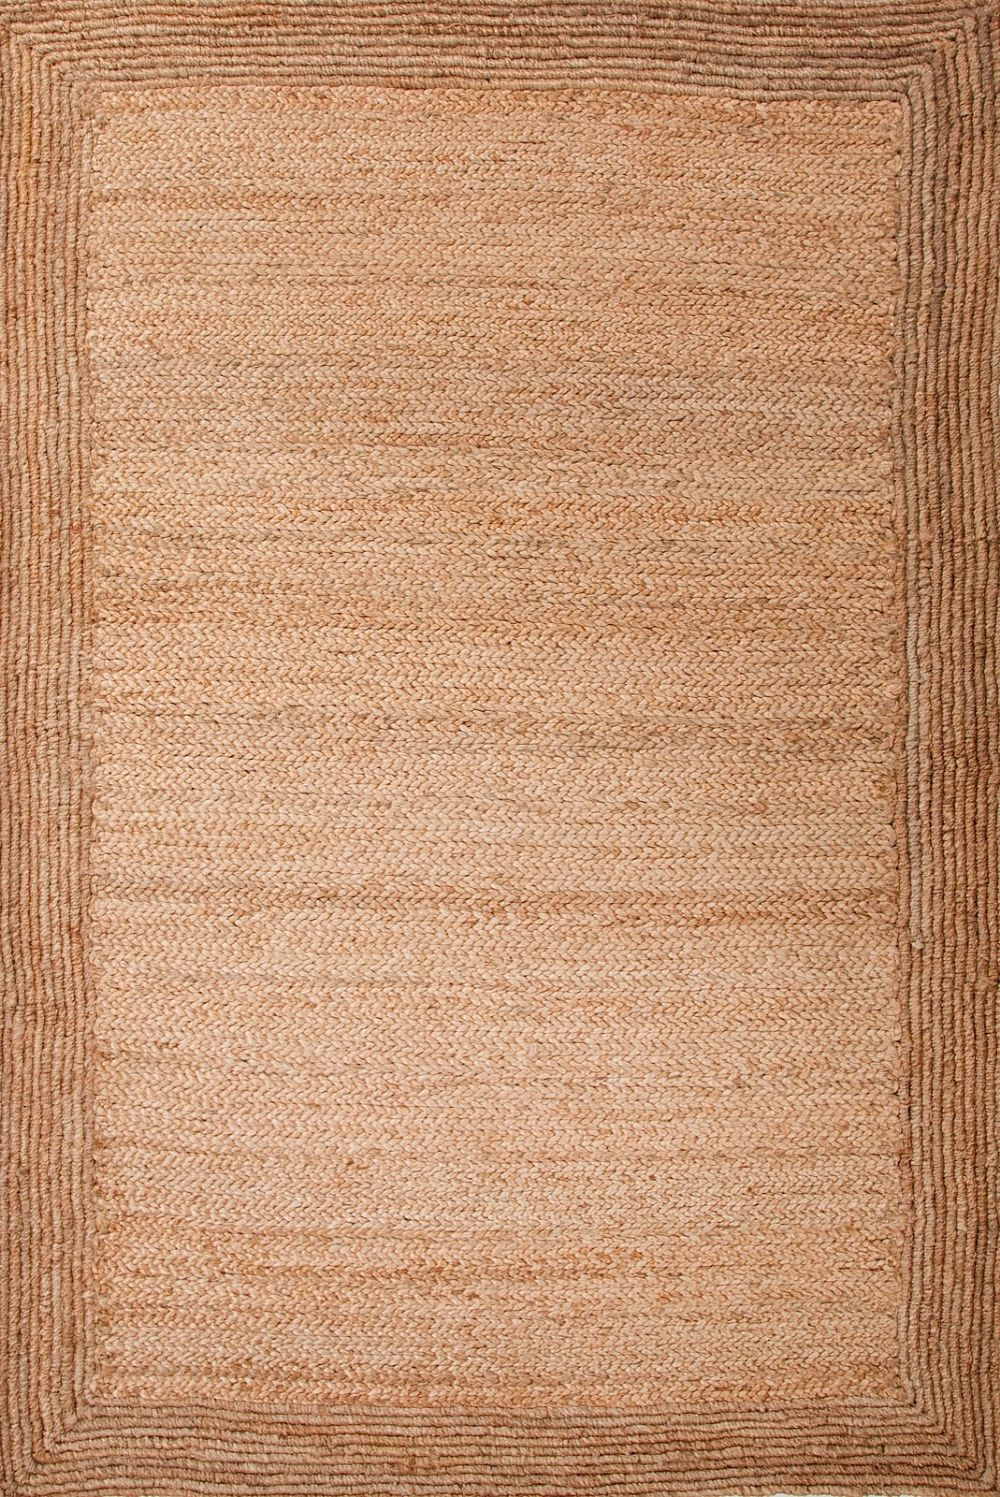 jaipur naturals tobago natural fiber area rug collection